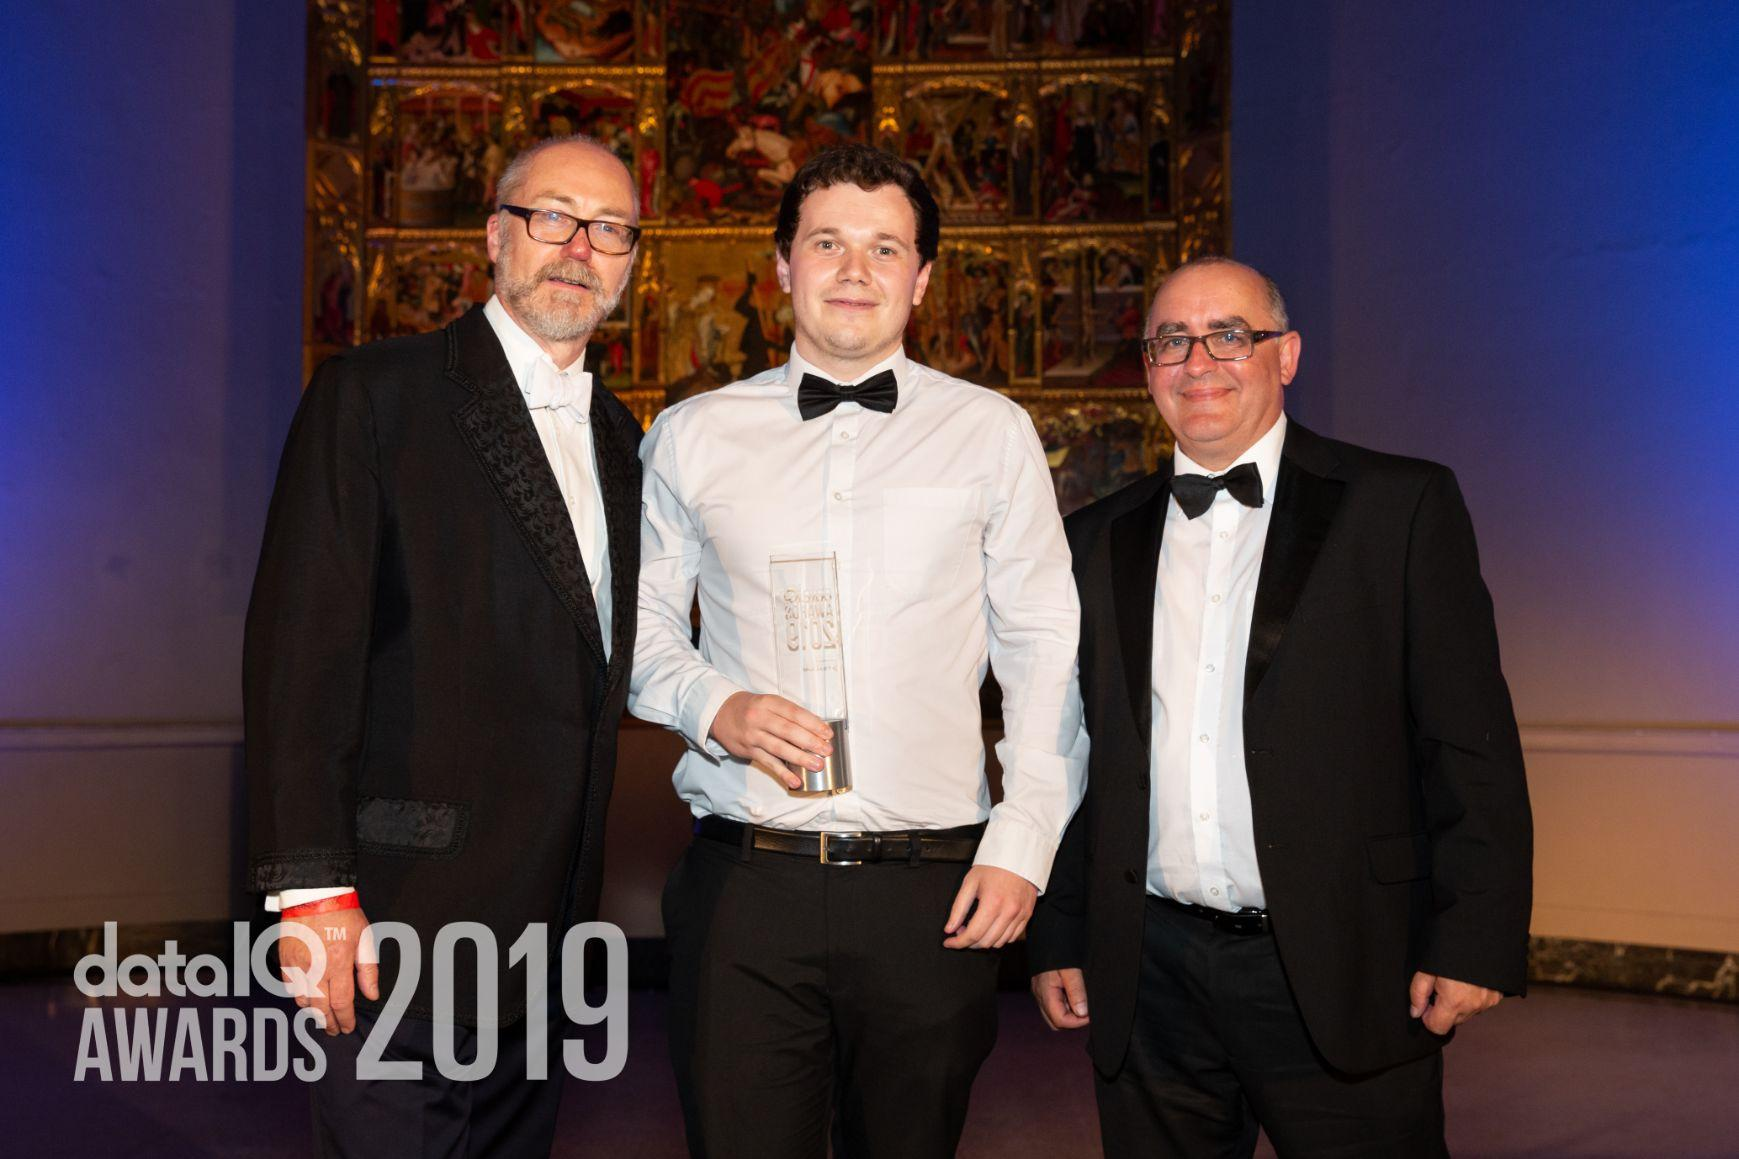 Awards 2019 Image 80